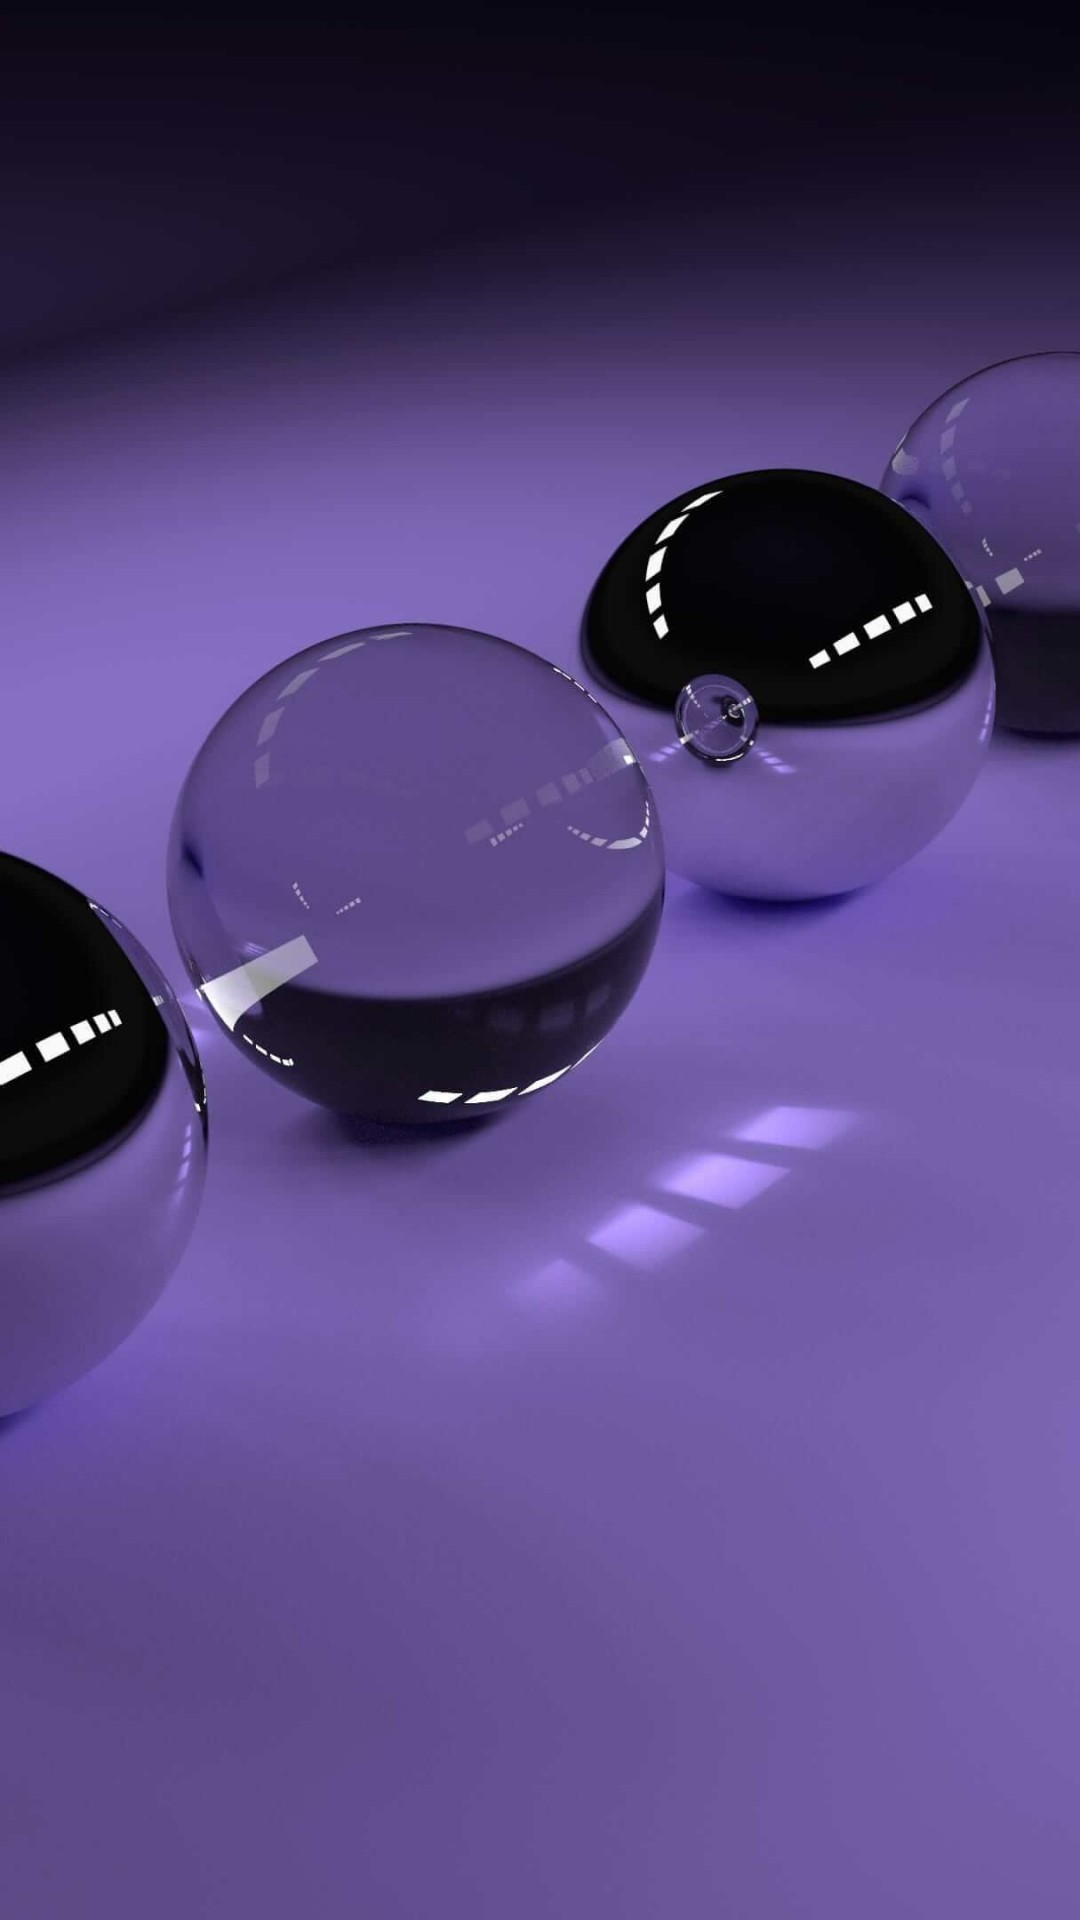 3D Glossy Spheres Wallpaper for SONY Xperia Z2